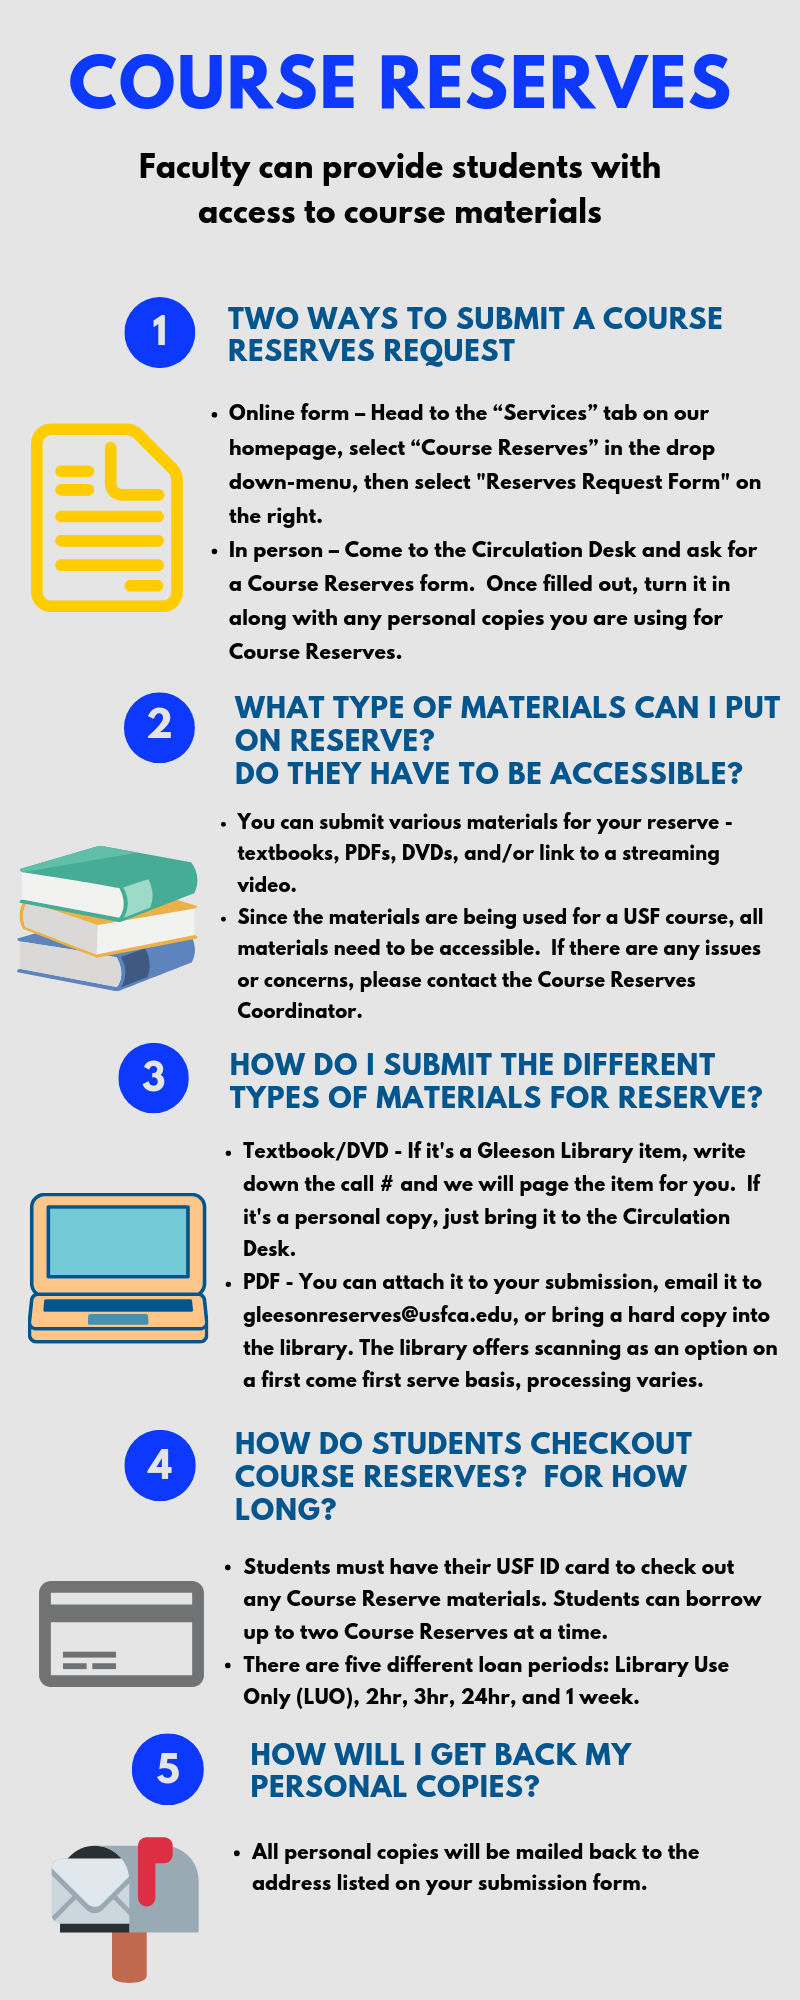 Infographic explaining course reserve services for faculty